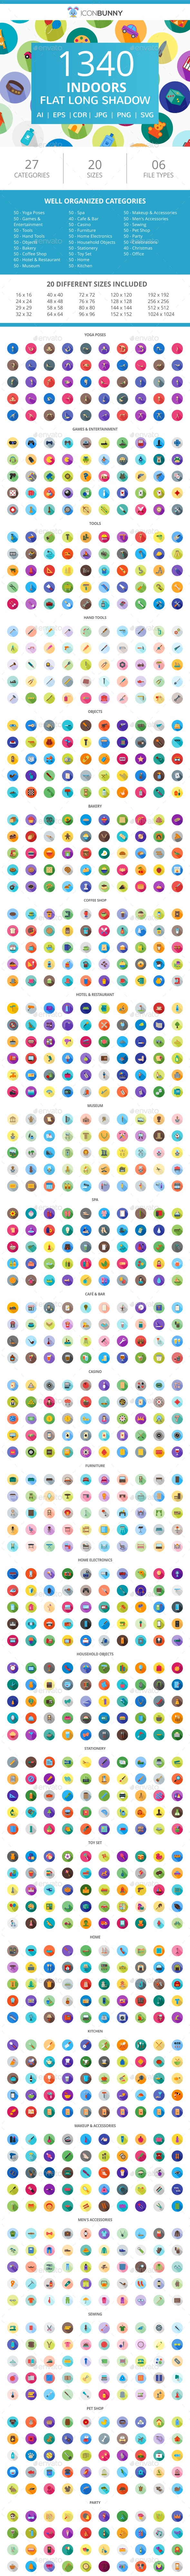 1340 Indoors Flat Long Shadow Icons - Icons